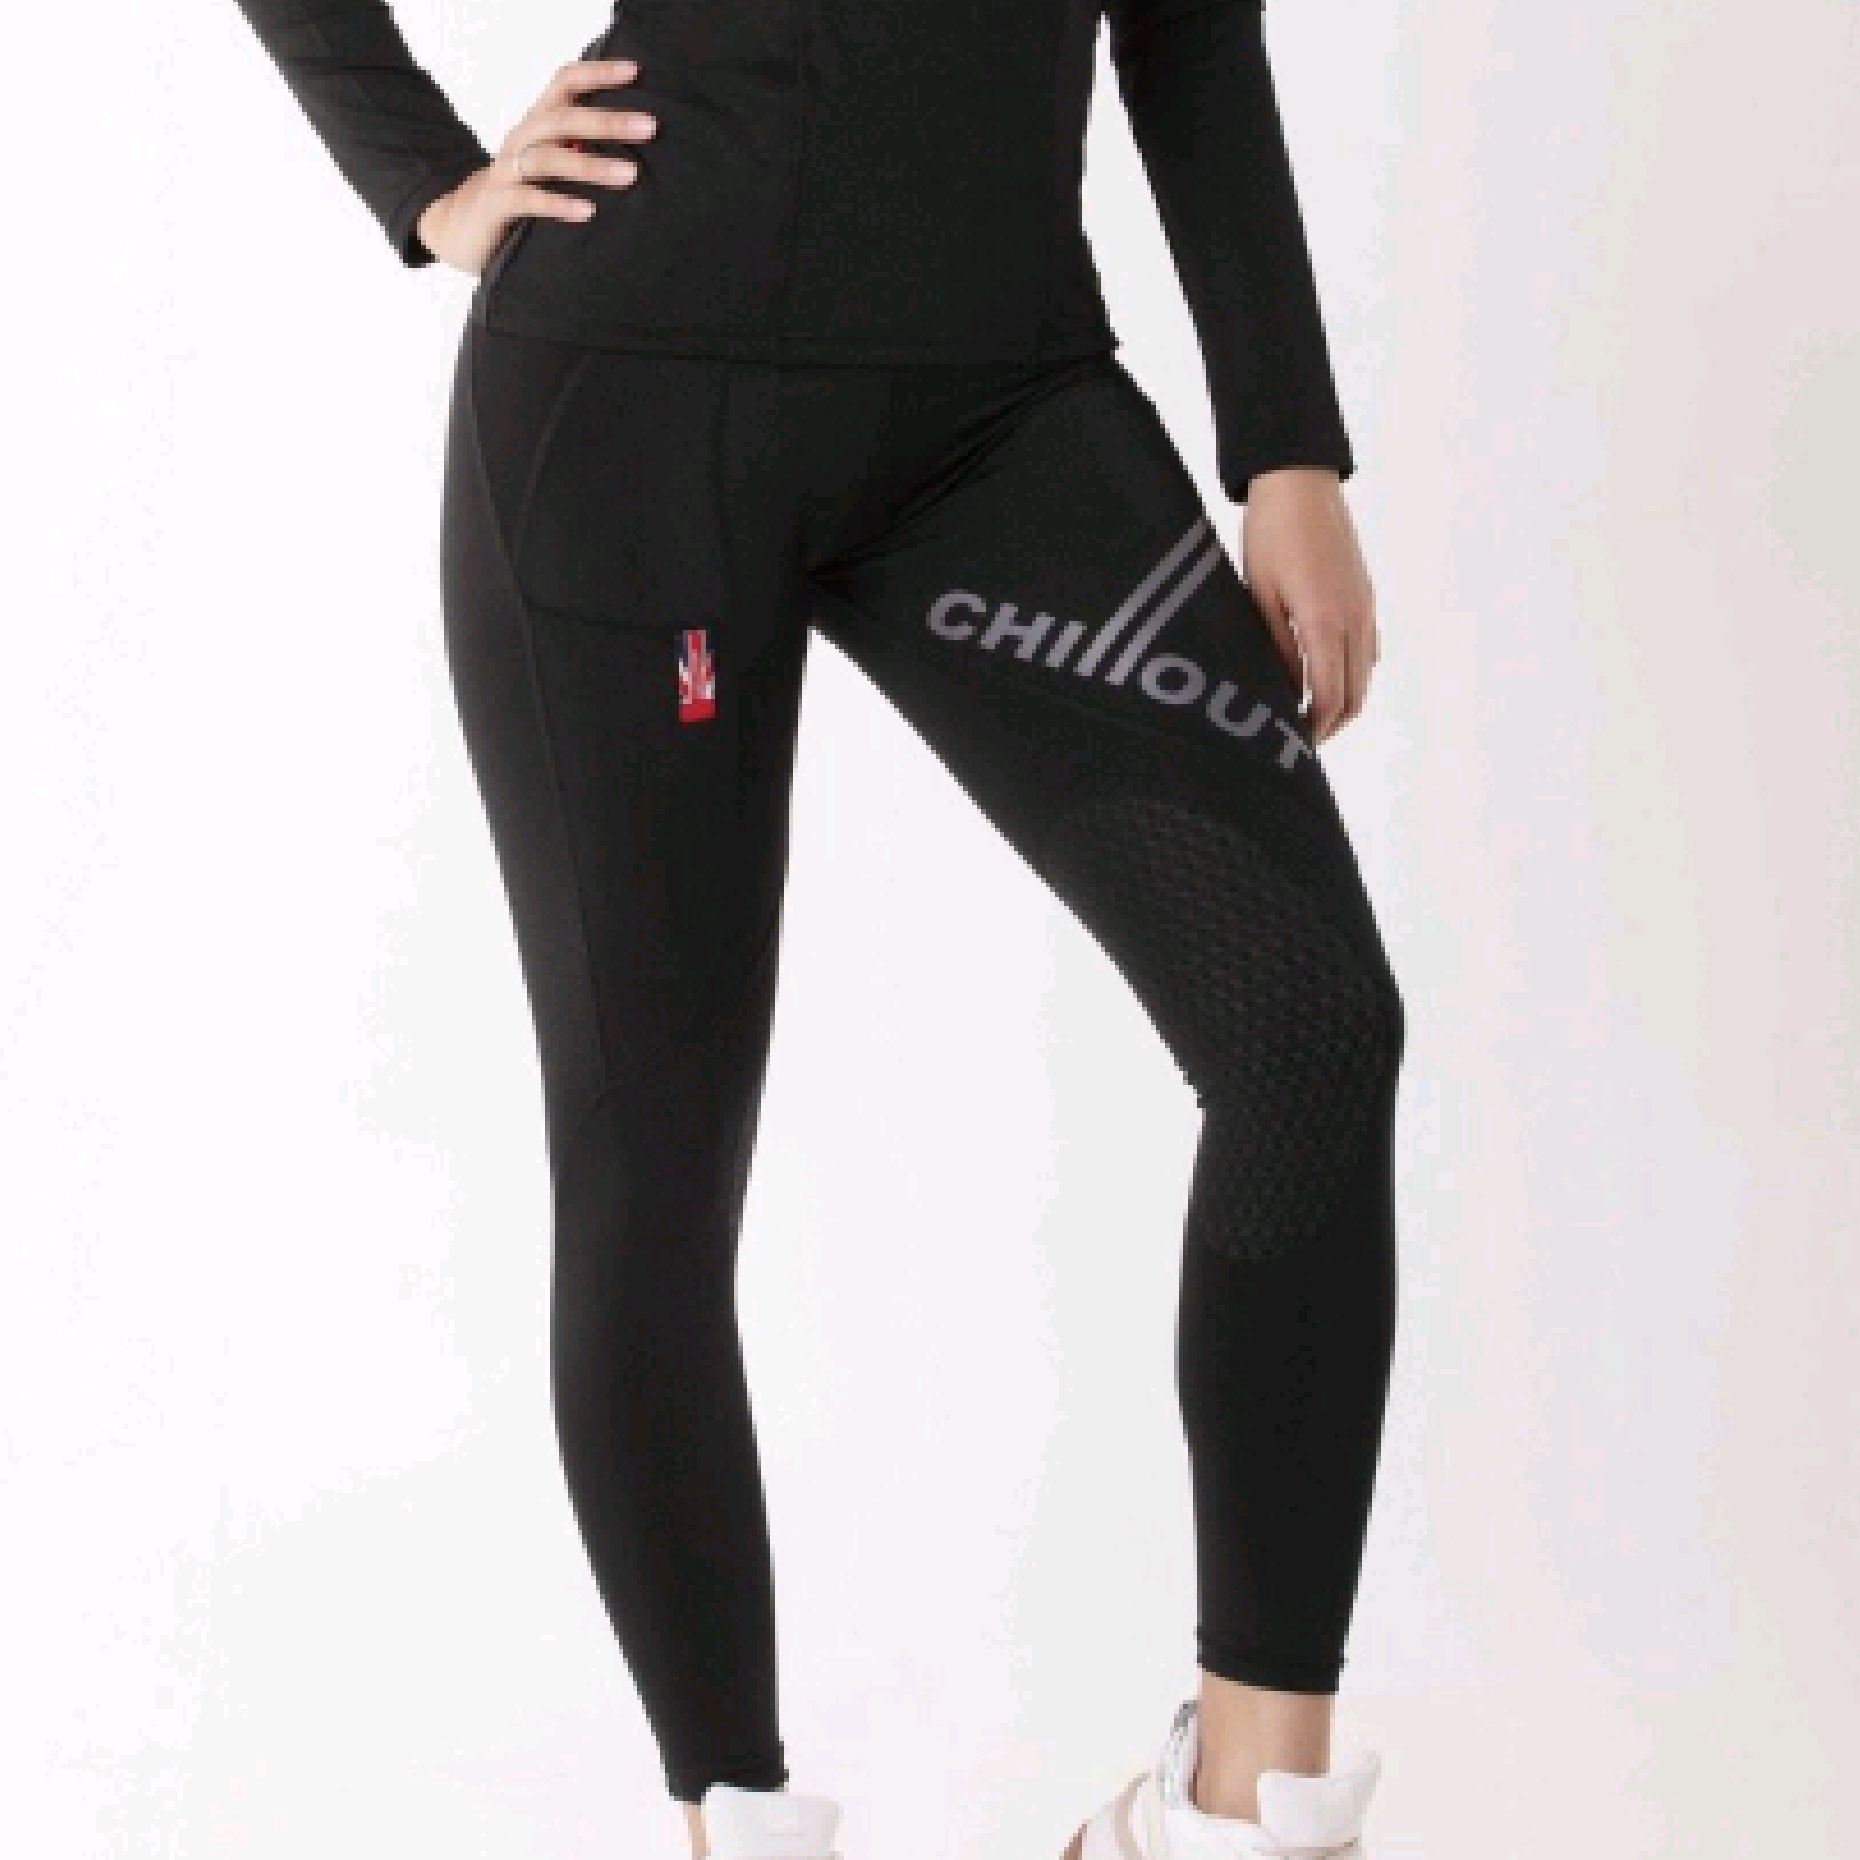 Chillout Black/Grey Silicone Riding Tights